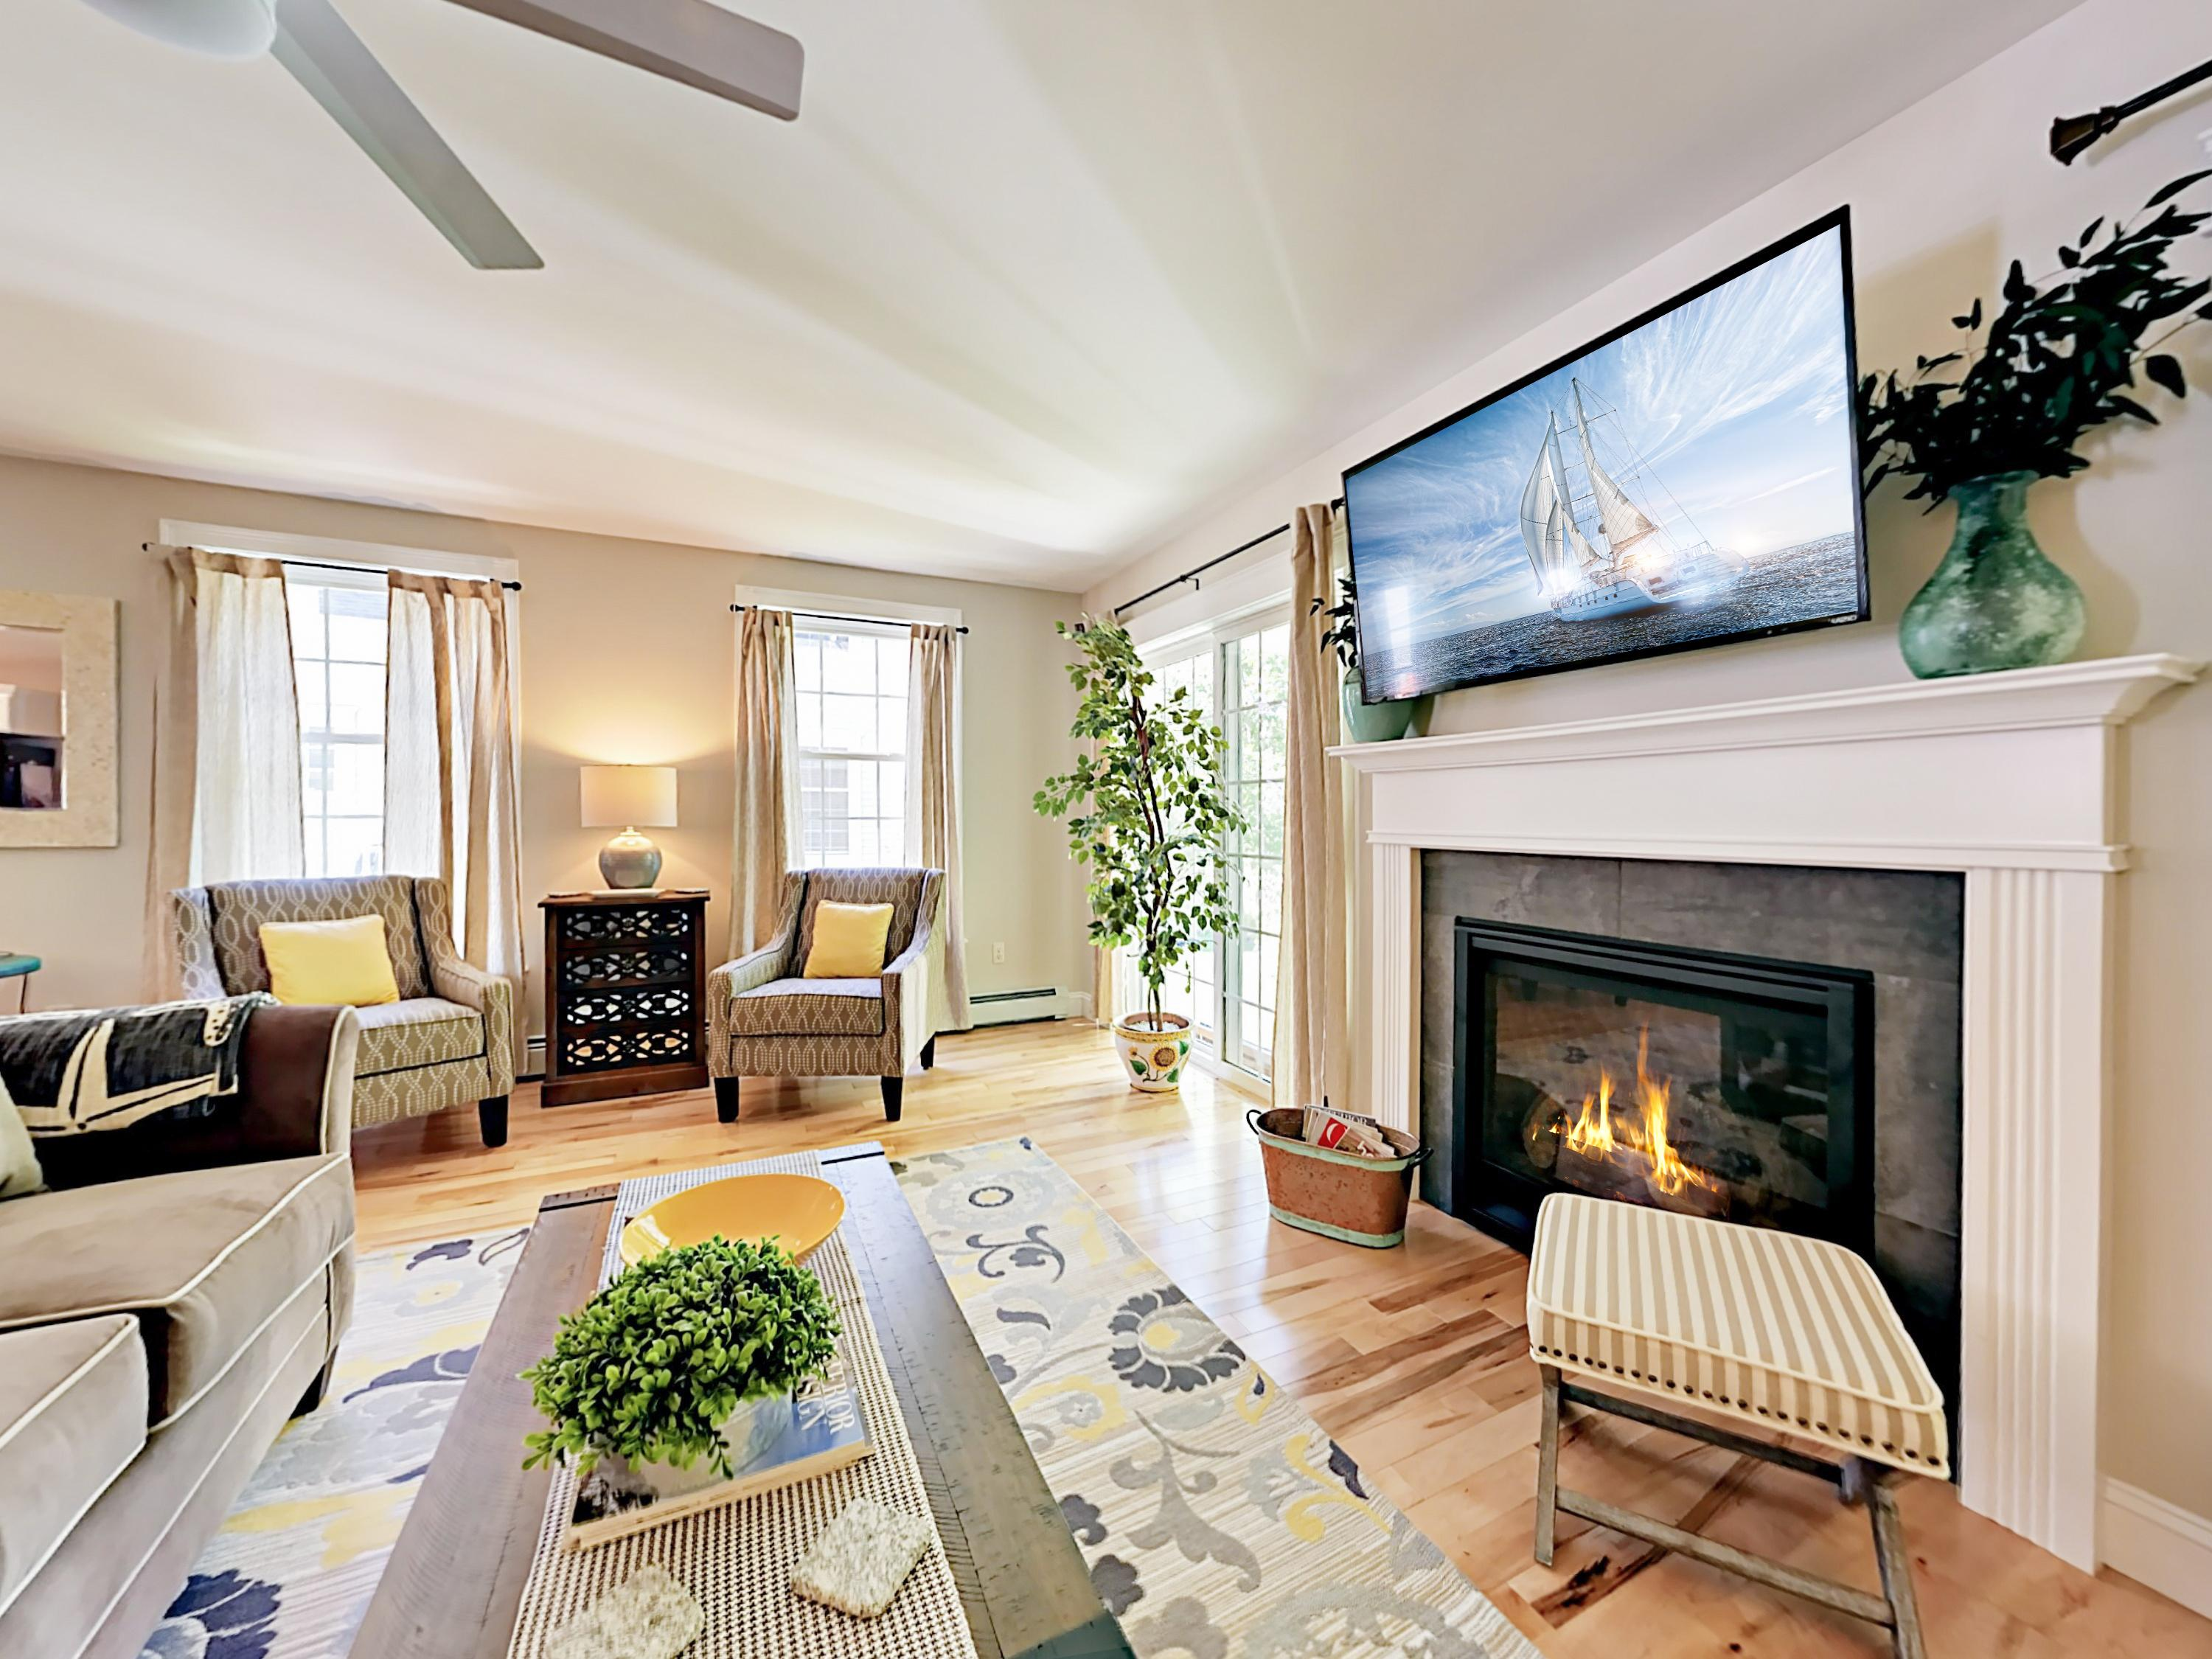 "Hardwood floors gleam in the living room, where there's seating for 5 around a gas fireplace and 52"" TV."